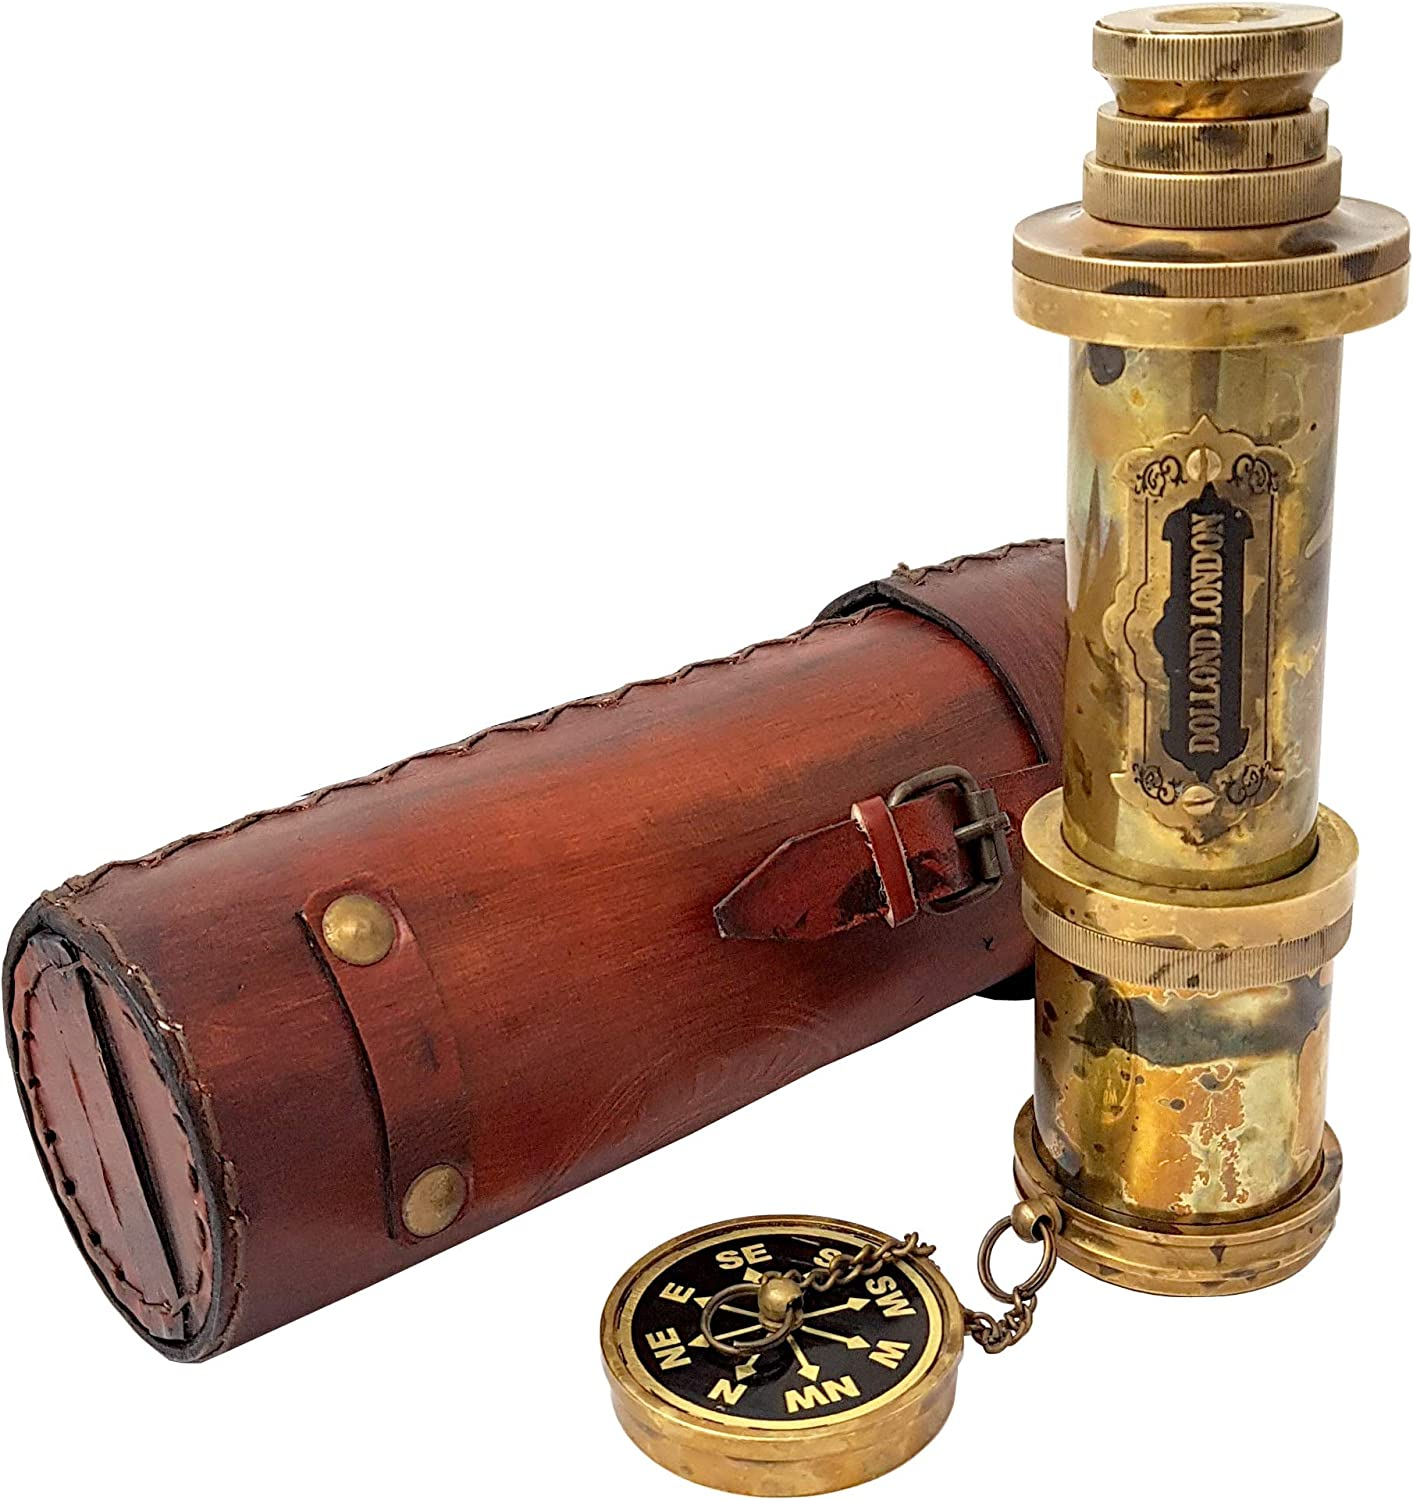 Brass Nautical OFFicial store - Functional Optic Telescope Made Max 86% OFF Glass